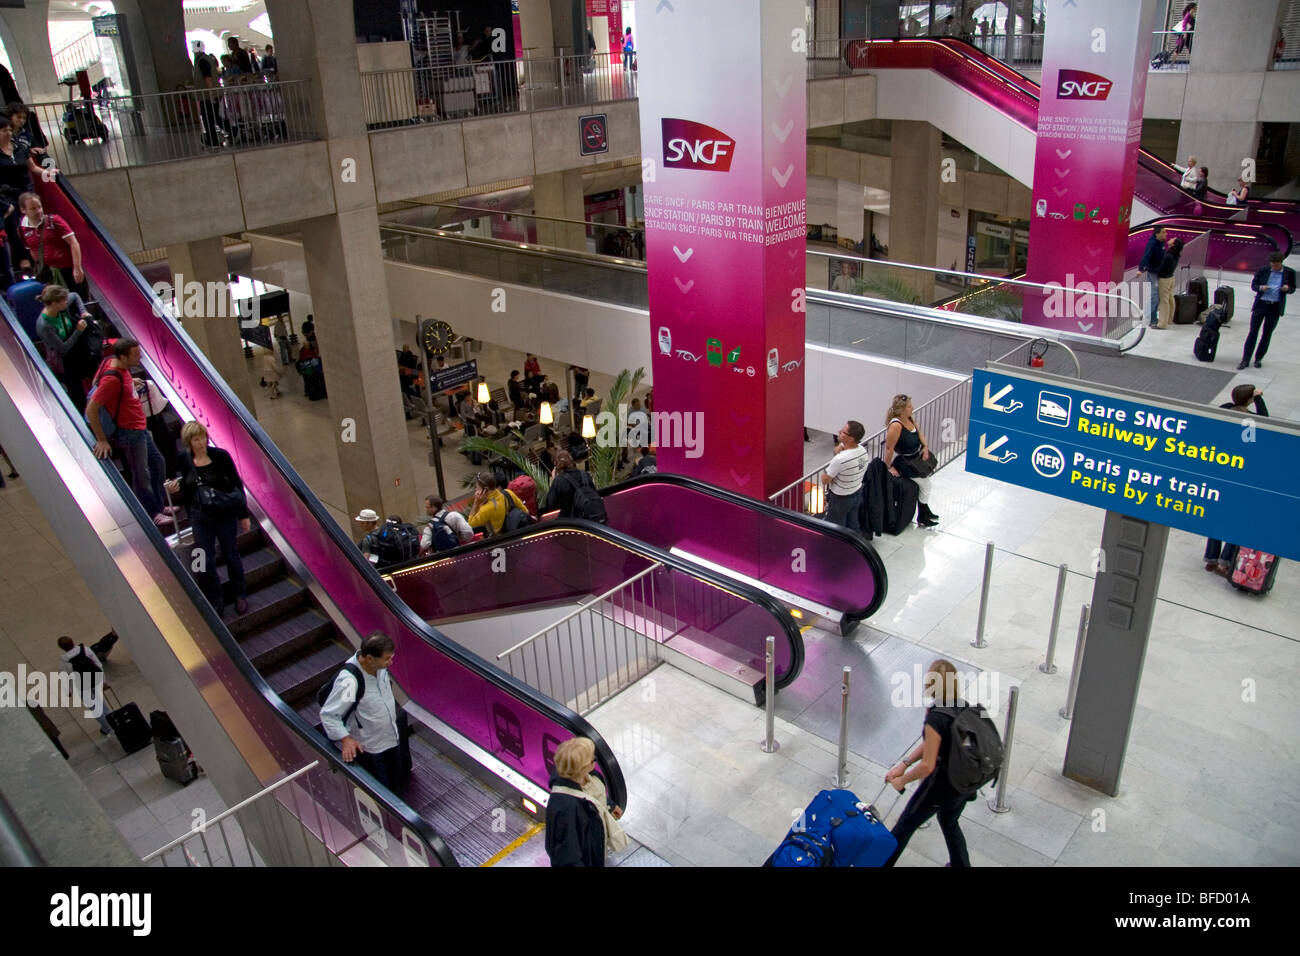 escalator and rer train station located in the paris charles de stock photo royalty free image. Black Bedroom Furniture Sets. Home Design Ideas